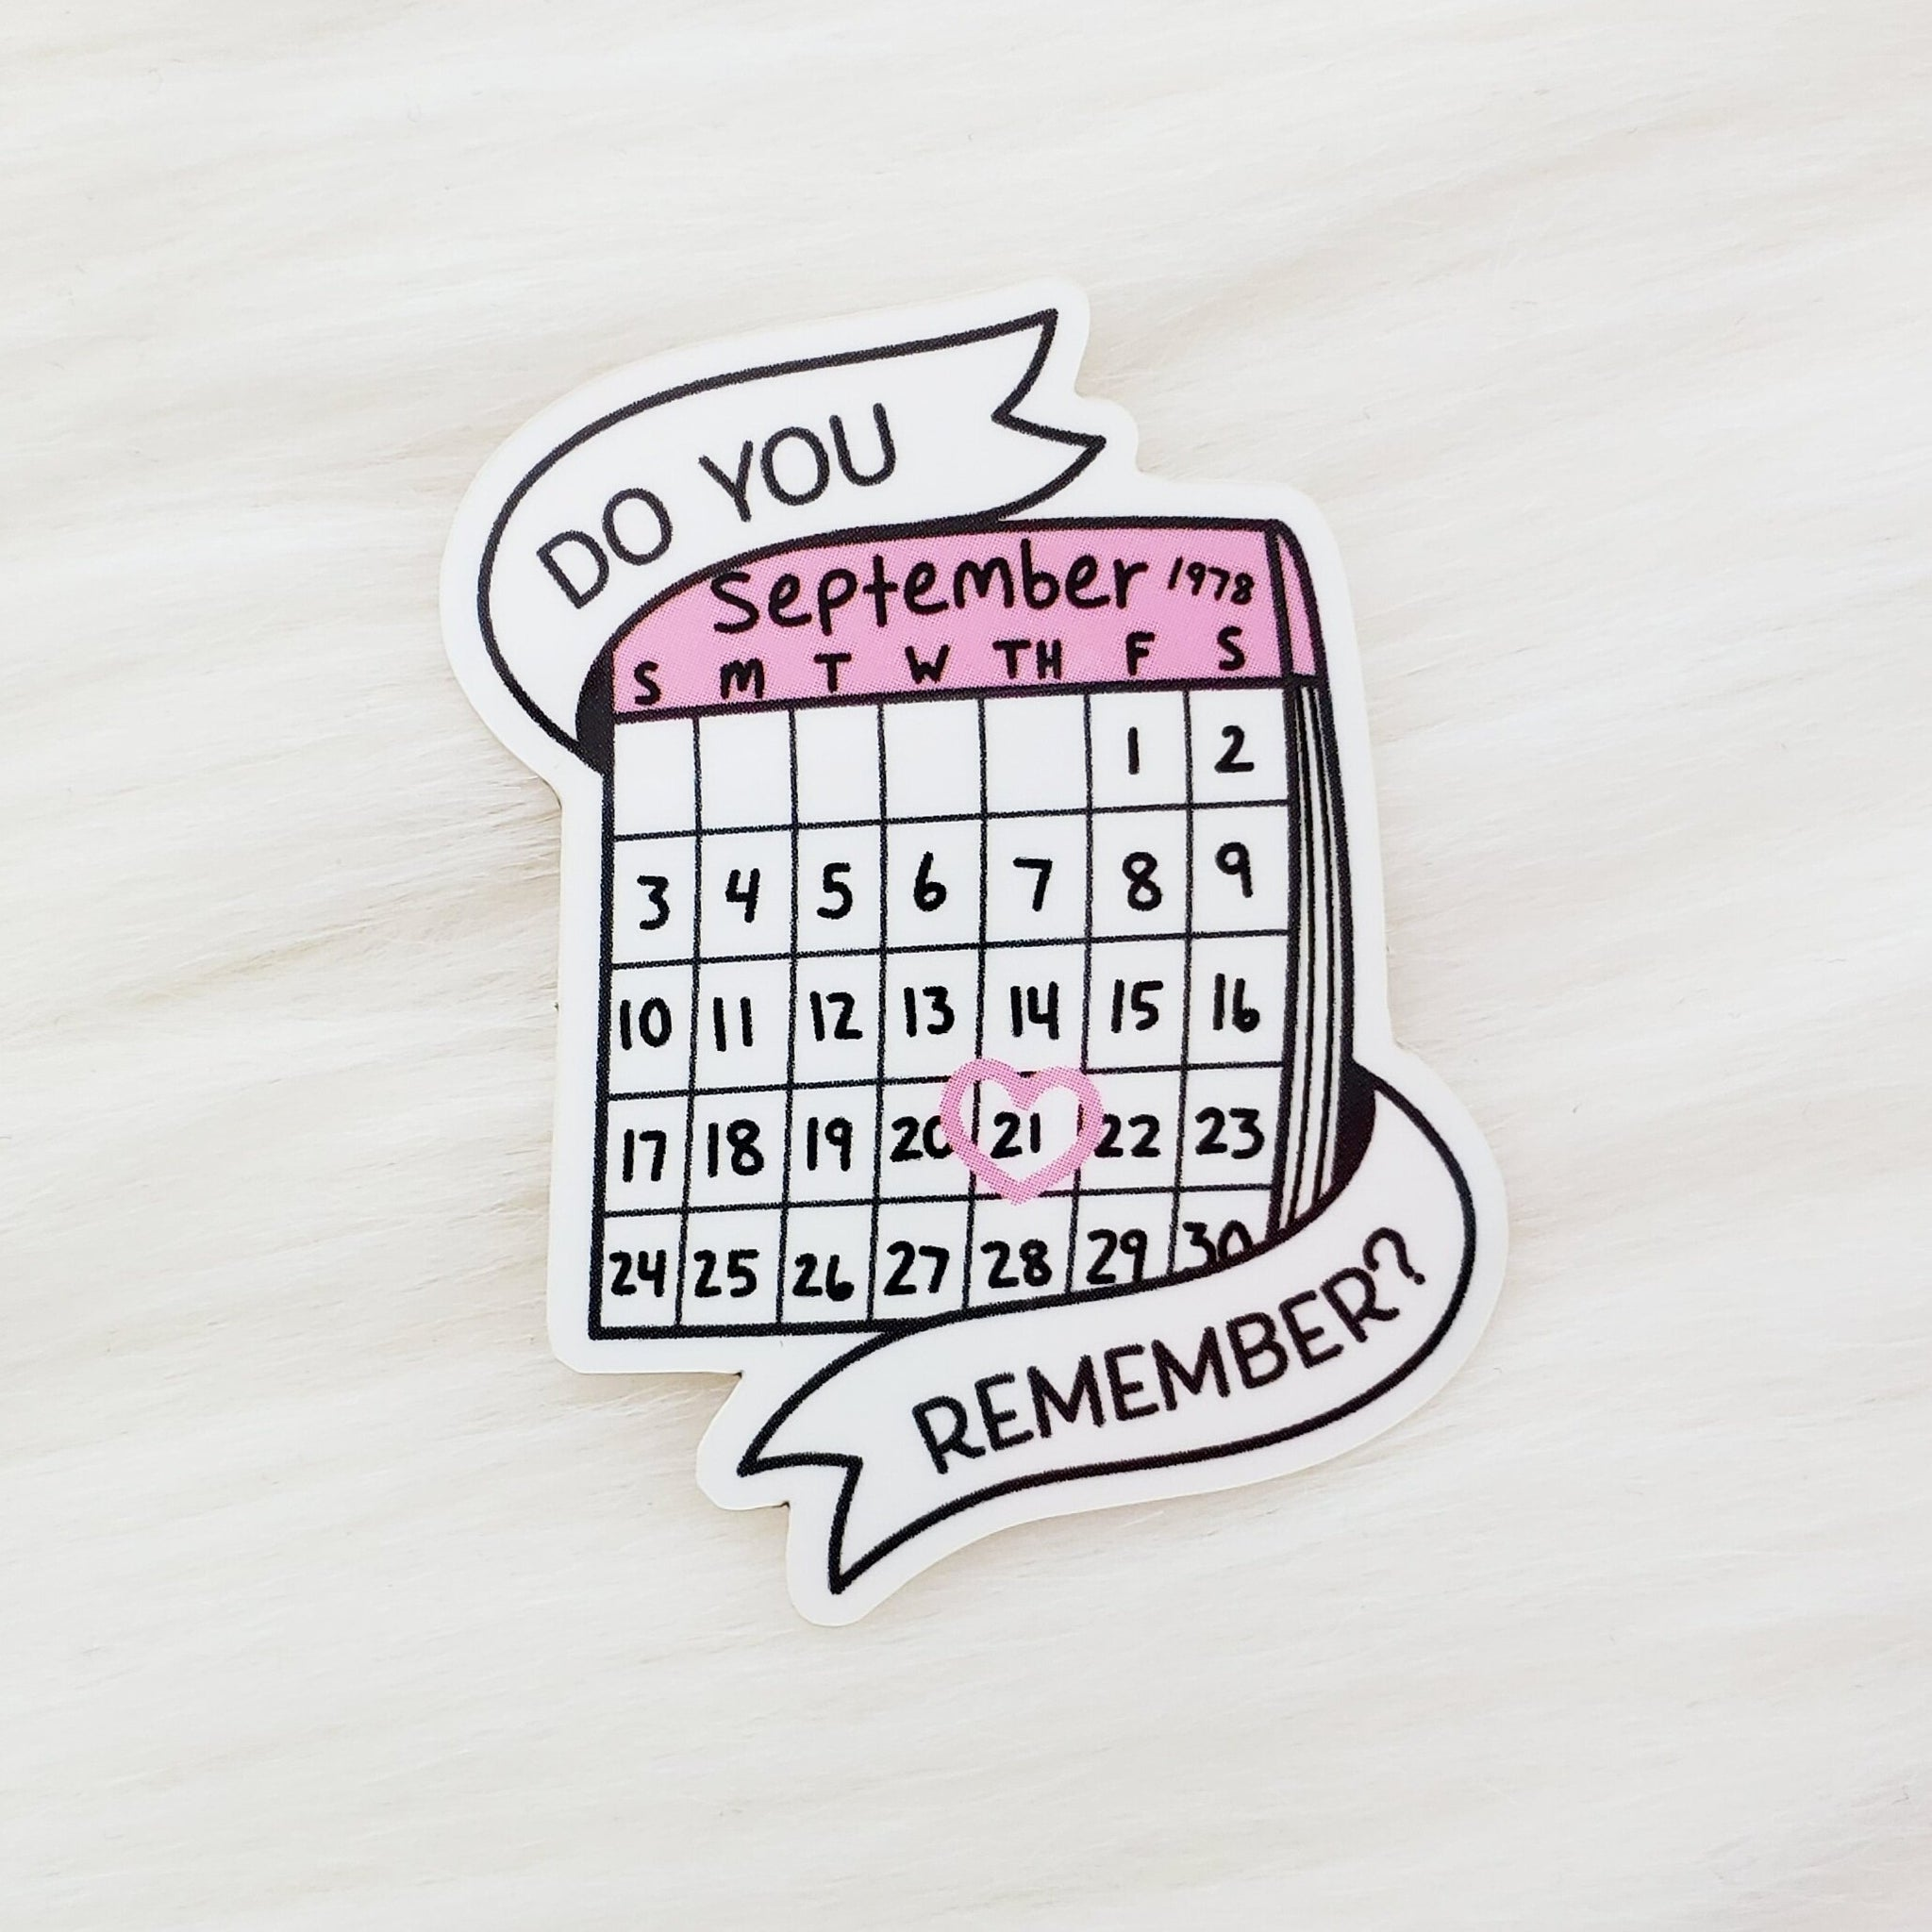 ♡ Do you Remember? Sticker ♡